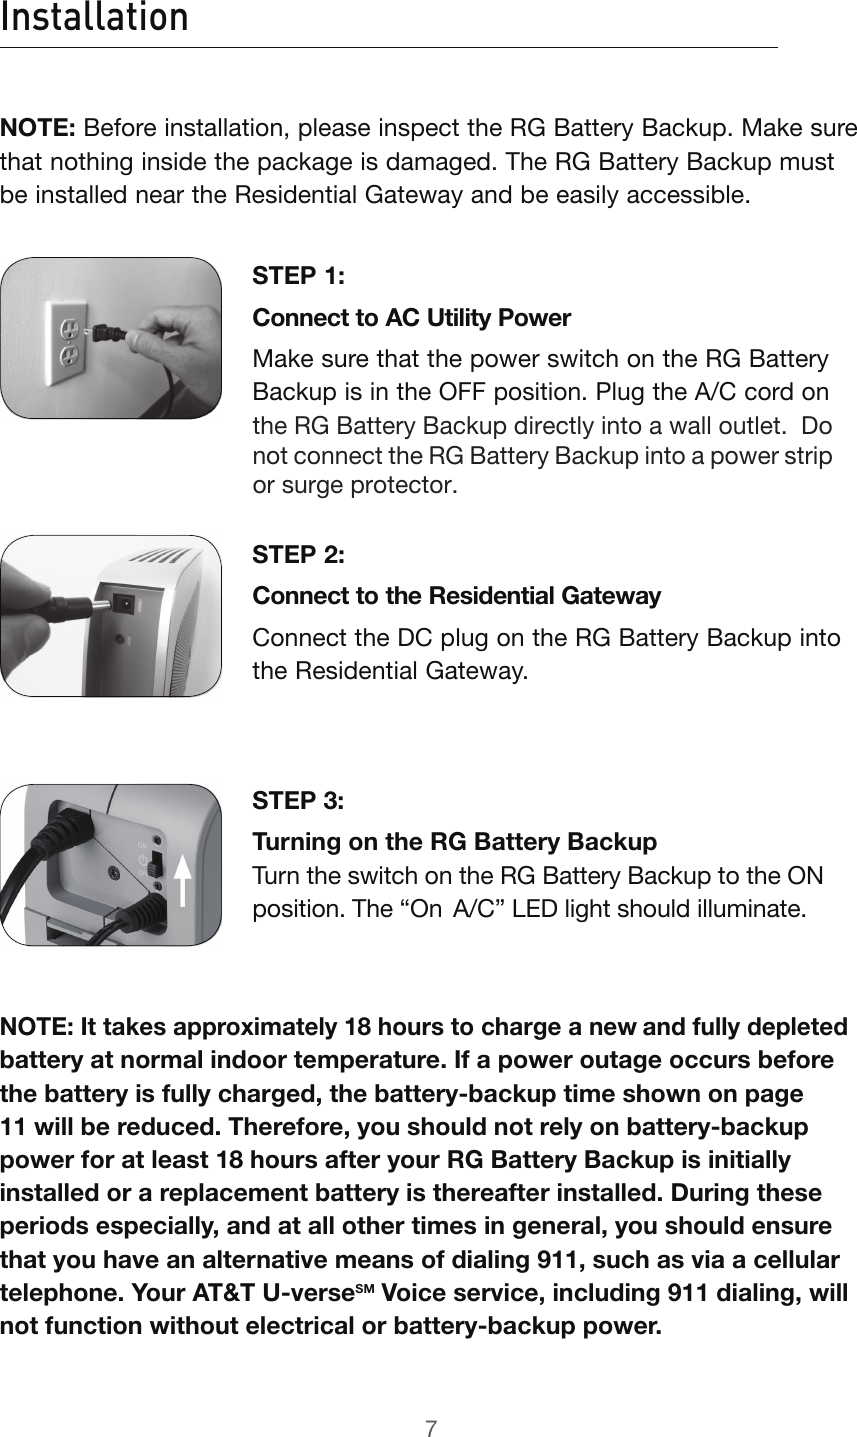 Belkin bu3dc001 12v users manual usermanualwallmountingbu3dc001 page 8 of 12 belkin belkin bu3dc001 12v users manual publicscrutiny Choice Image